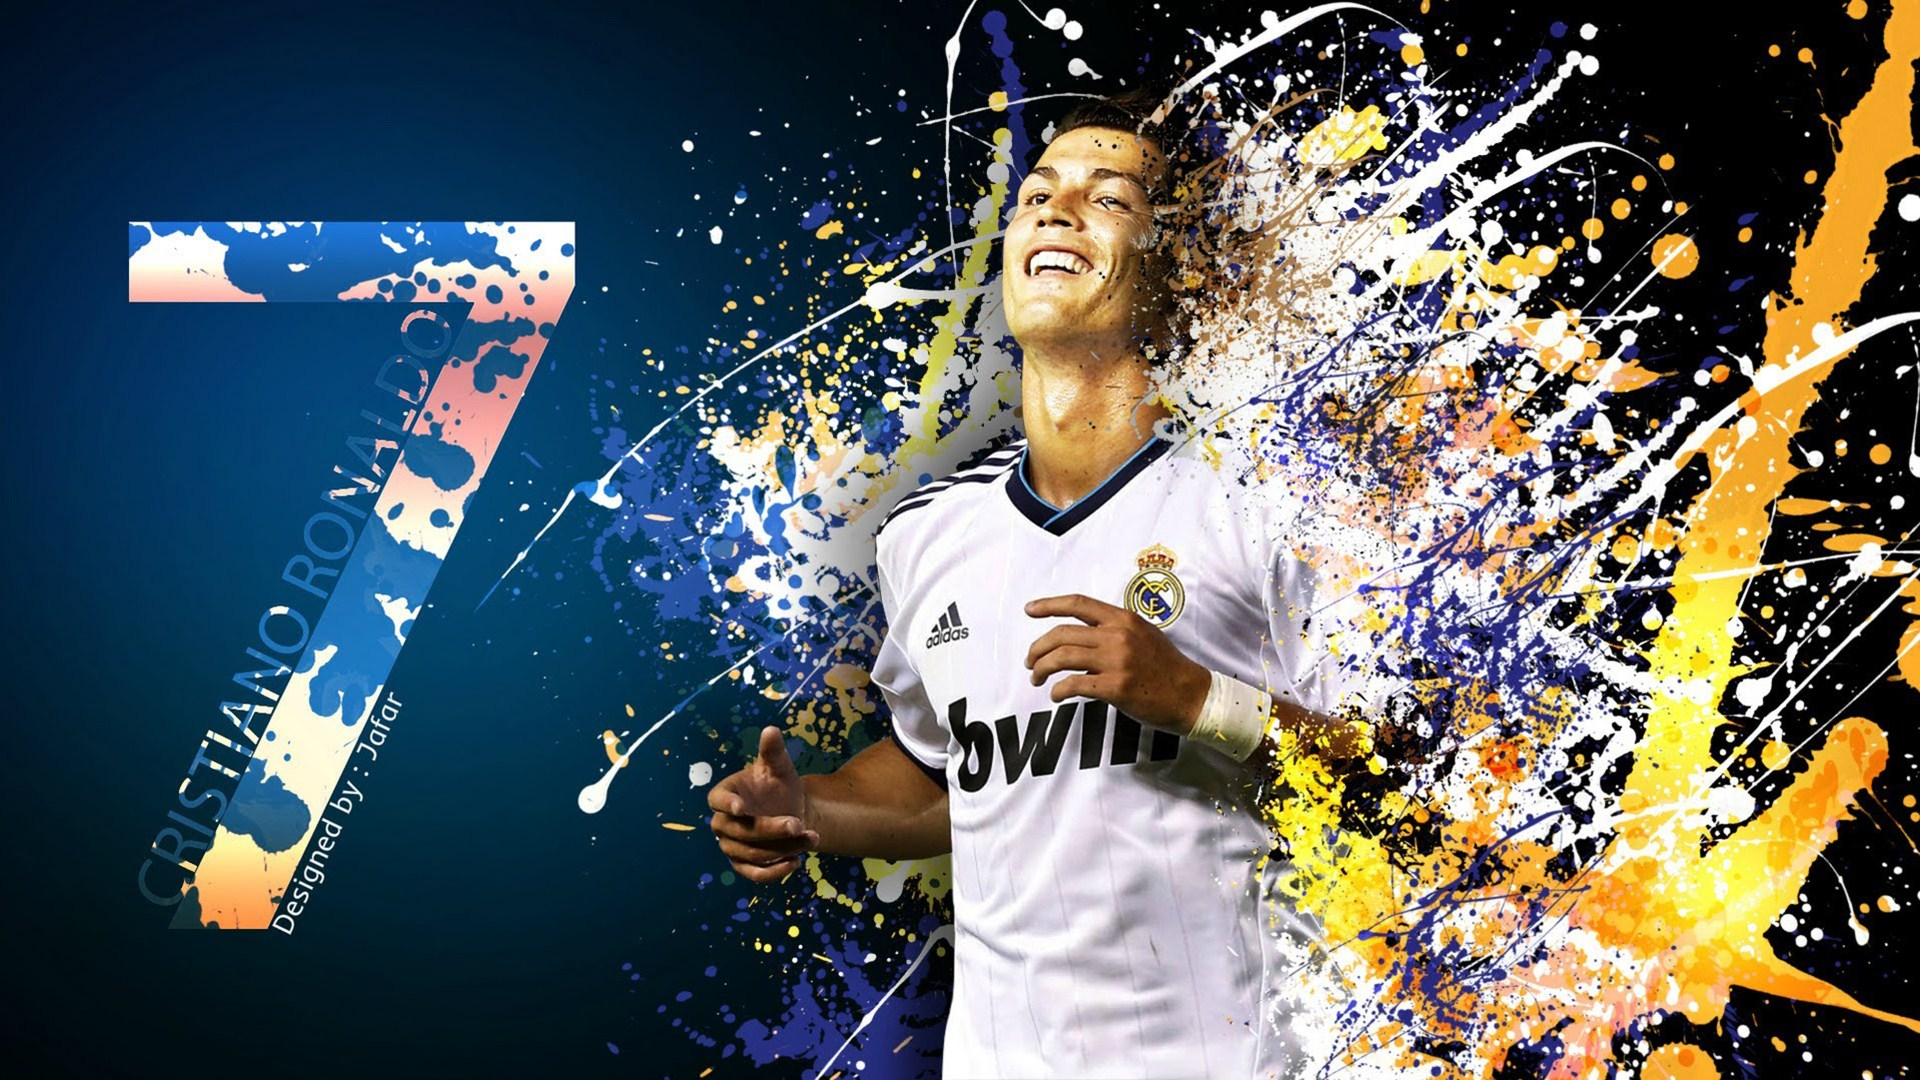 Cristiano Ronaldo Wallpapers Pictures Images 1920x1080